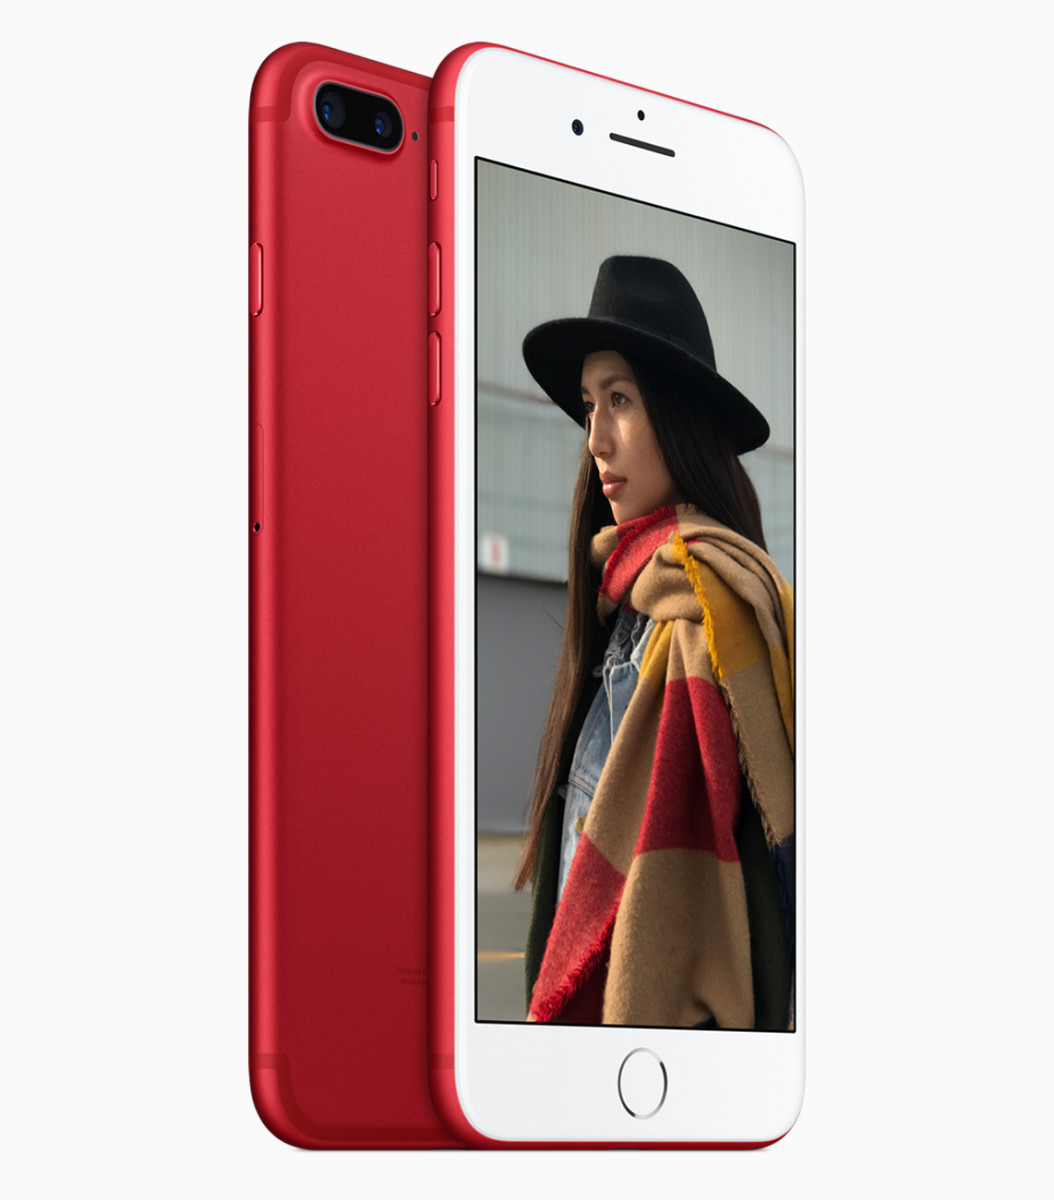 apple-iphone-7-product-red-special-edition-03